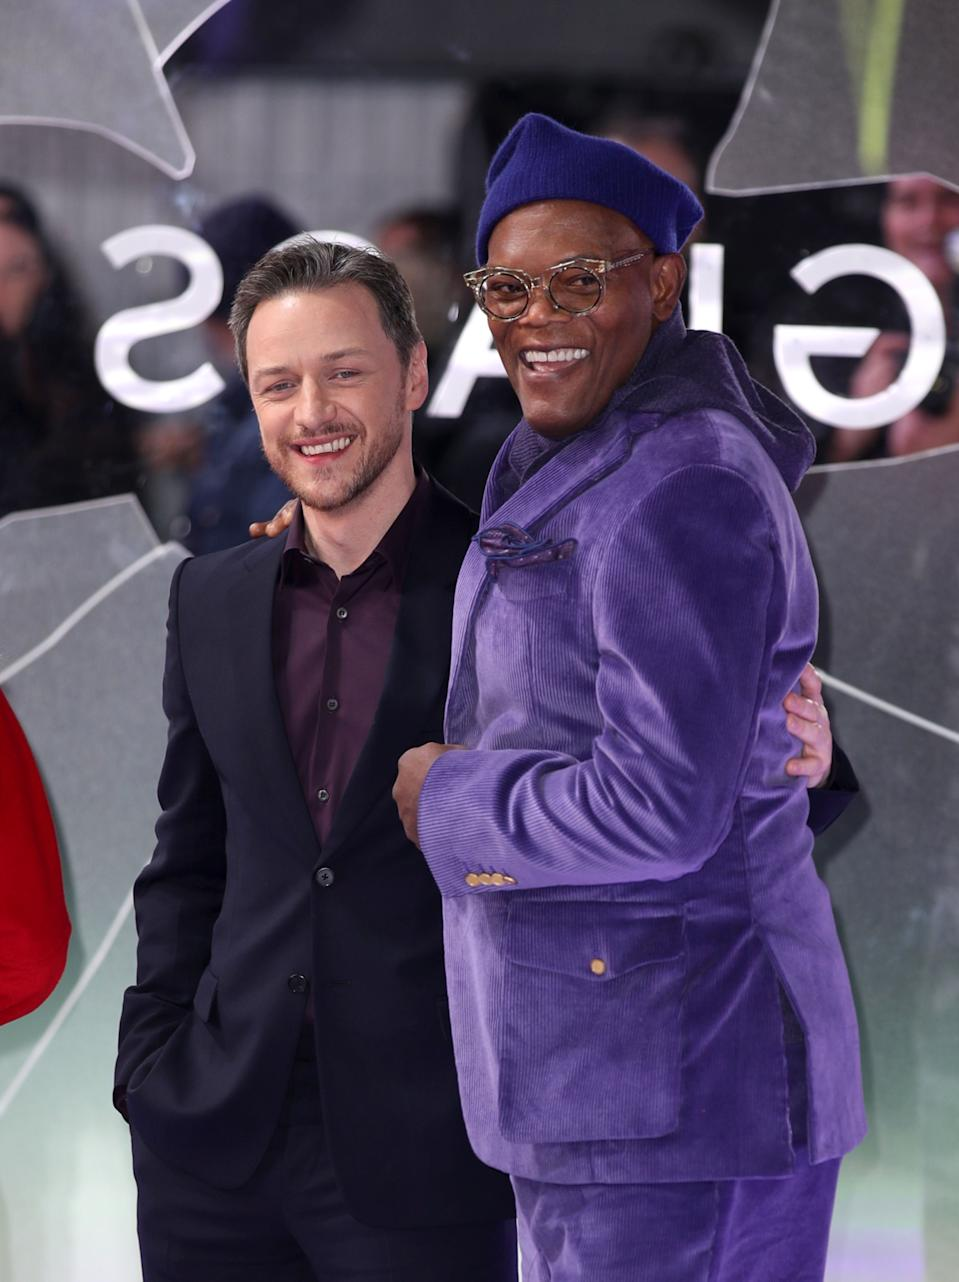 """LONDON, ENGLAND - JANUARY 09:  Samuel L Jackson and James McAvoy attend the UK Premiere of """"Glass"""" at The Curzon Mayfair on January 09, 2019 in London, England. (Photo by Mike Marsland/ Mike Marsland/WireImage)"""